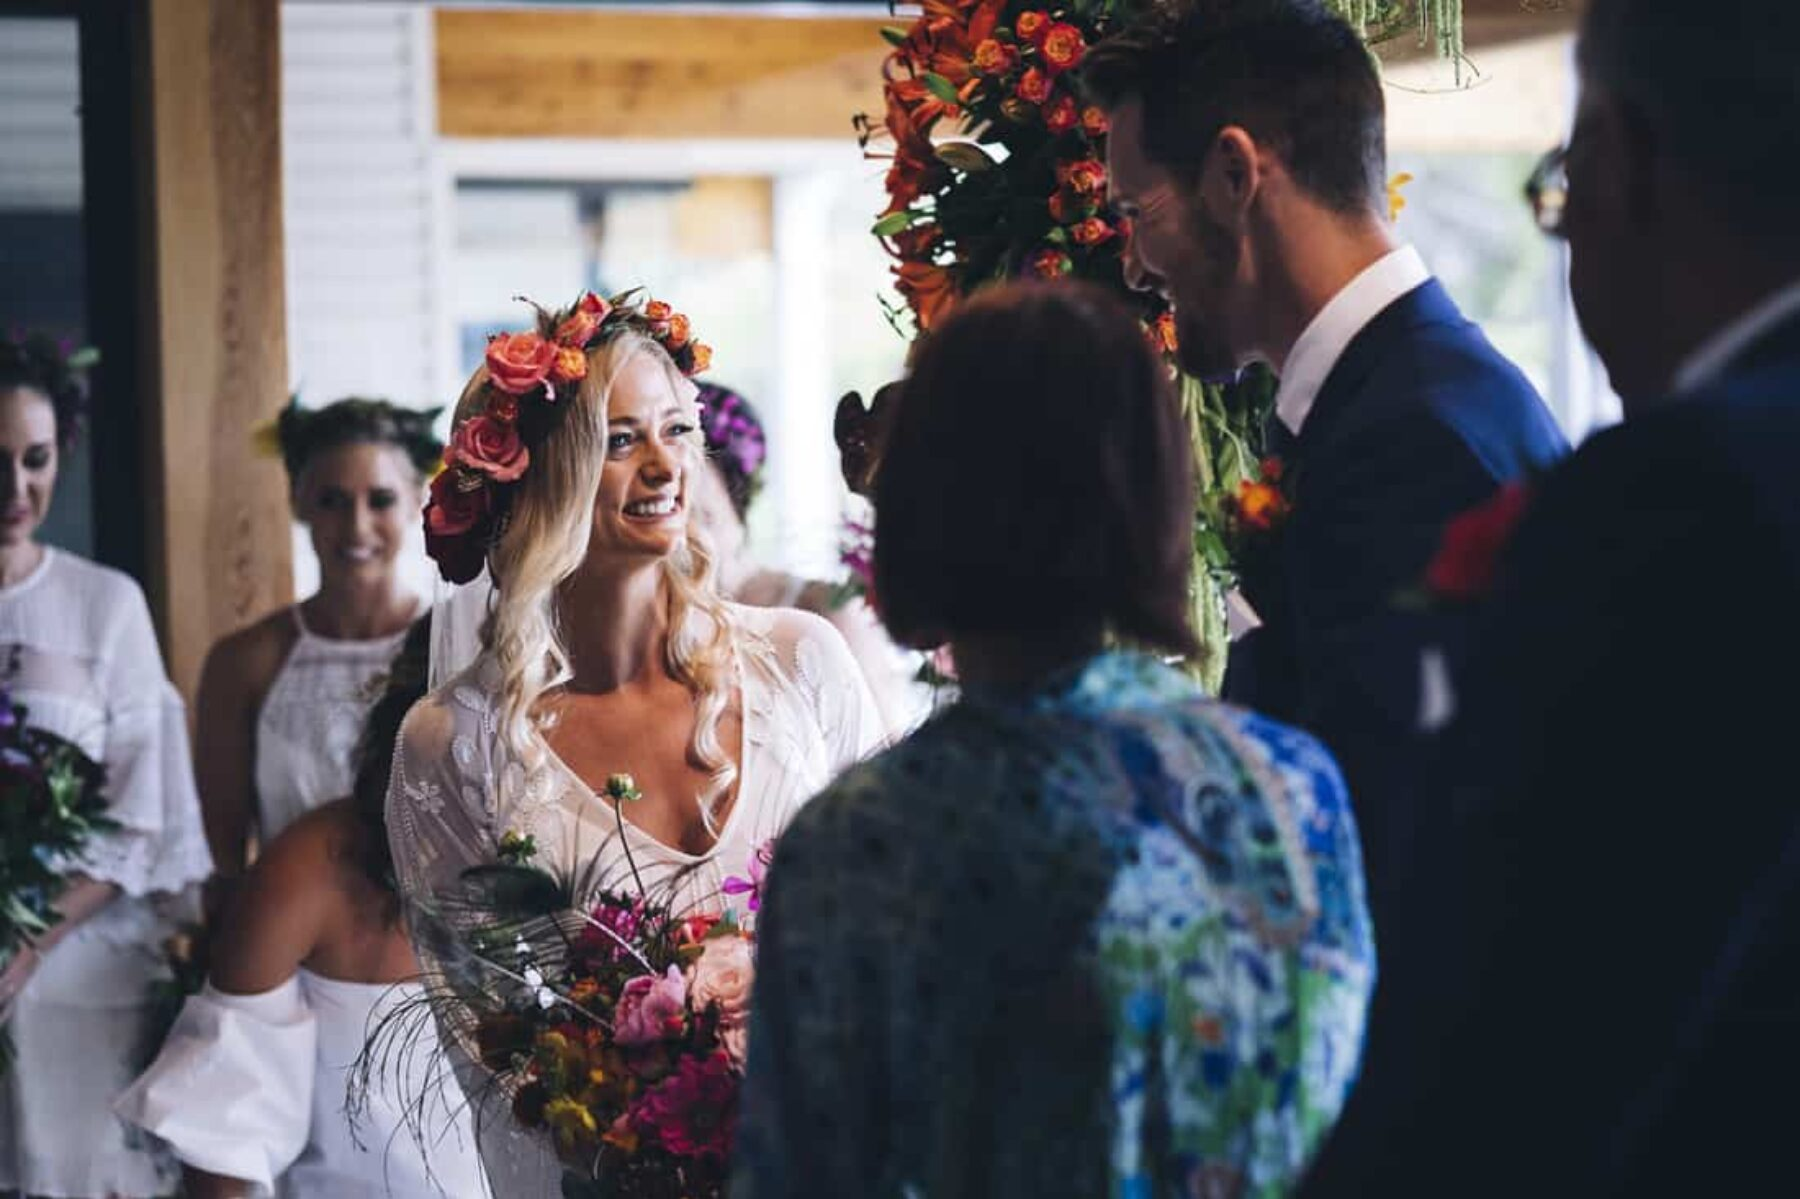 flower-filled Margaret River wedding at Bunker Beach House